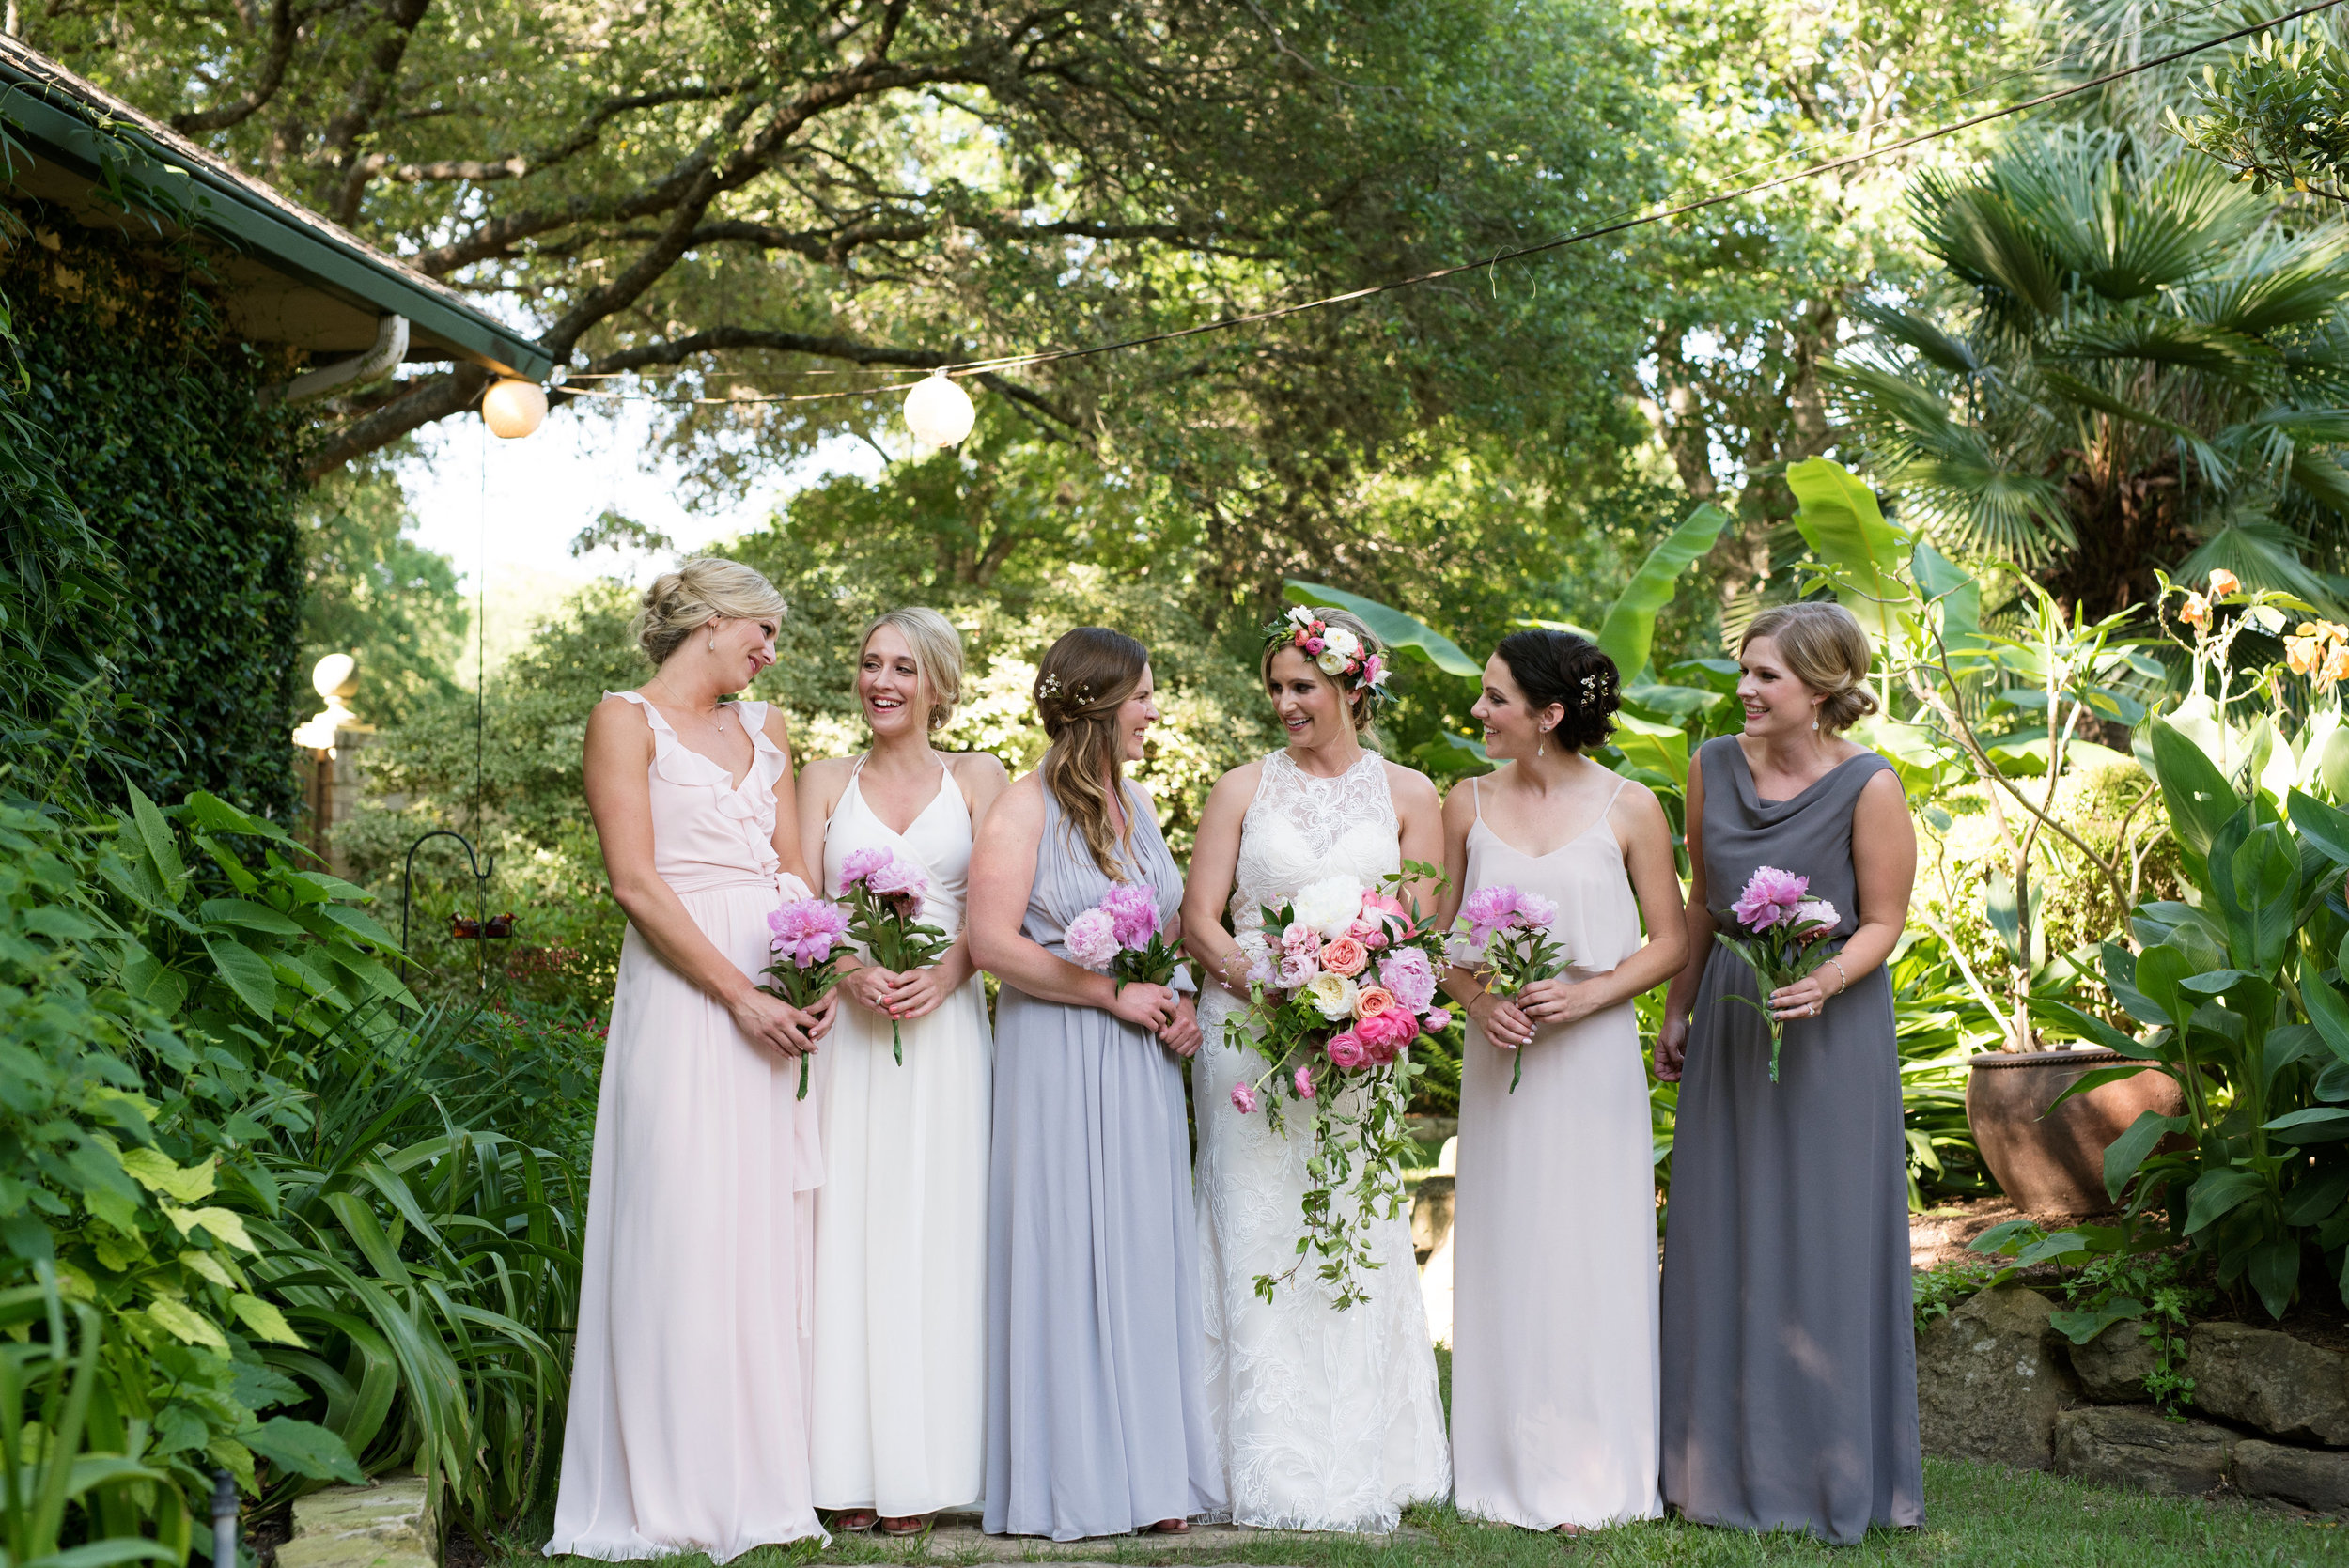 121-kelsey-bryce-wedding.JPG